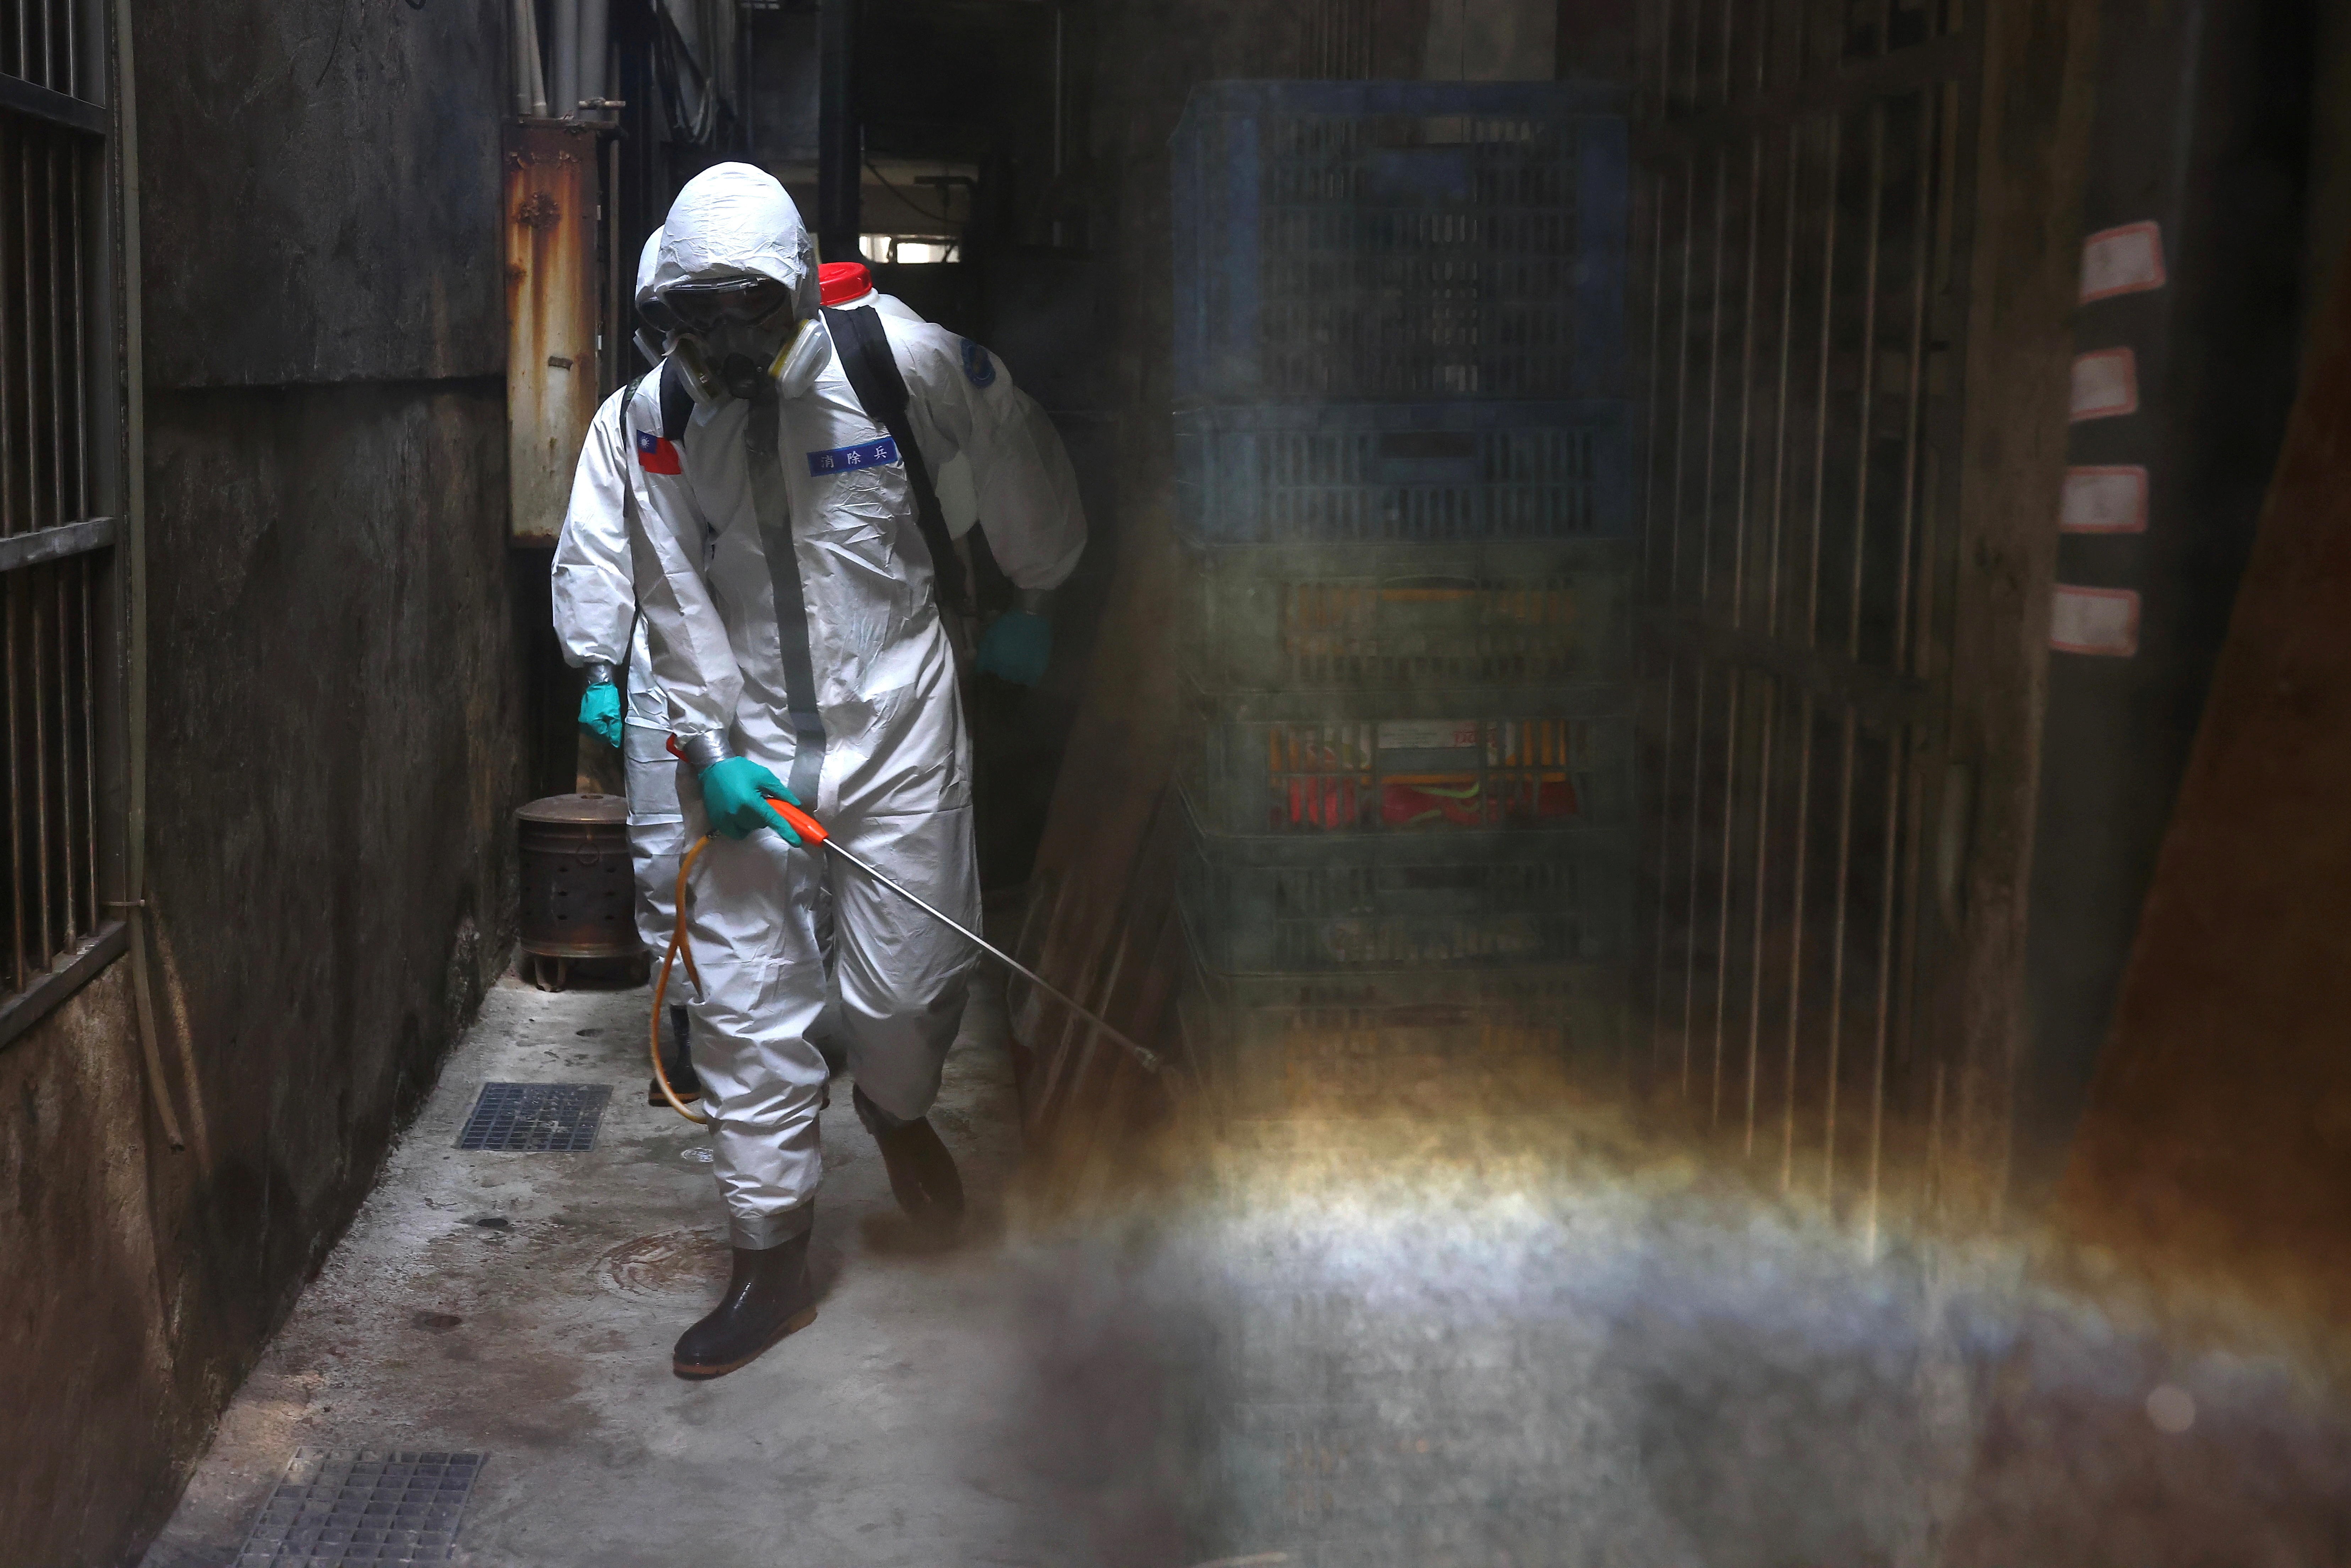 Soldiers in protective suits disinfect a street following the recent surge of coronavirus disease (COVID-19) infections, in the Tucheng district of New Taipei City, Taiwan May 27, 2021. REUTERS/Ann Wang